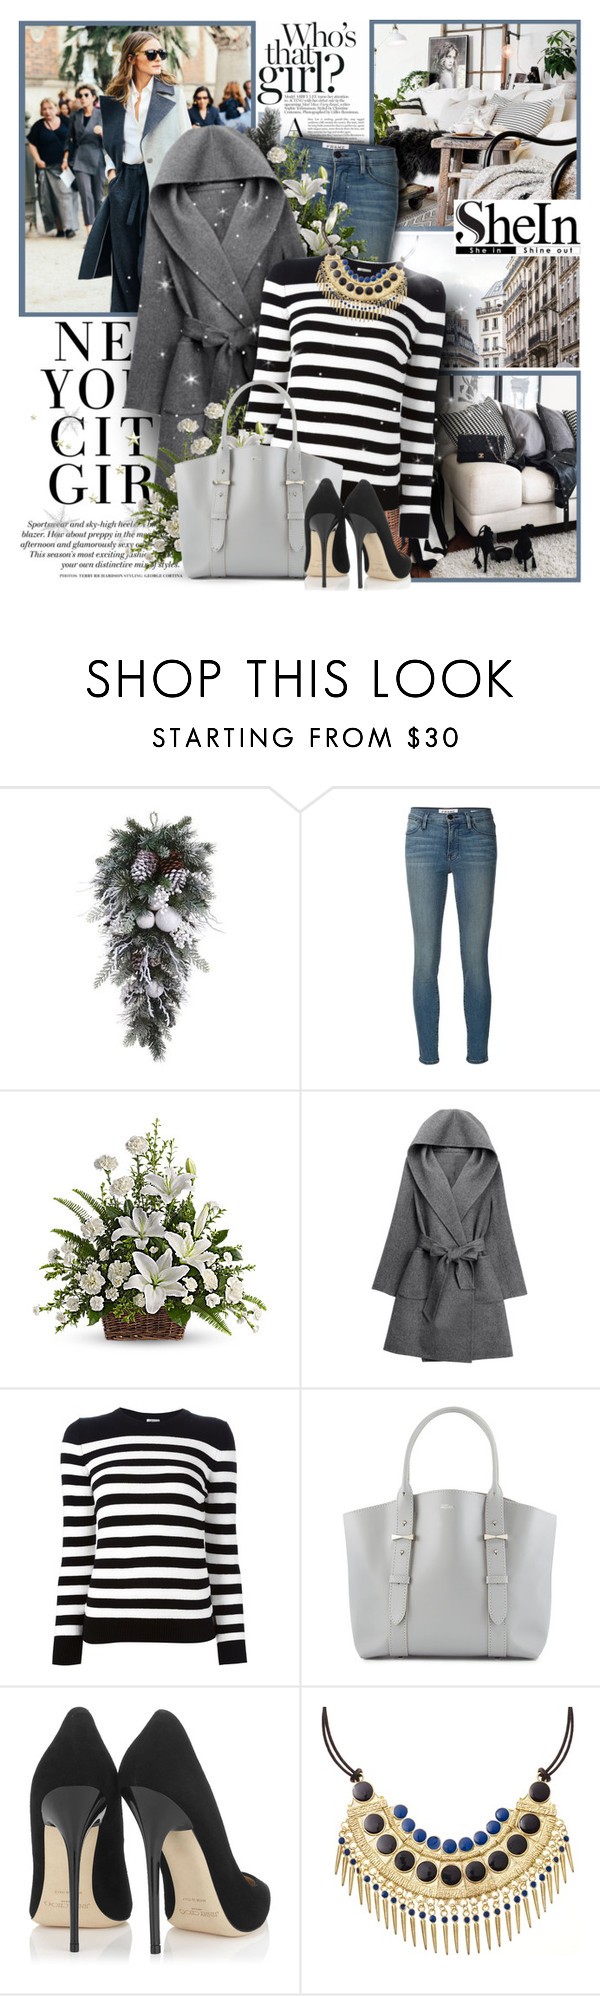 """""""Who's that girl?"""" by mlucyw ❤ liked on Polyvore featuring H&M, Frame Denim, WithChic, Yves Saint Laurent, Alexander McQueen and Jimmy Choo"""